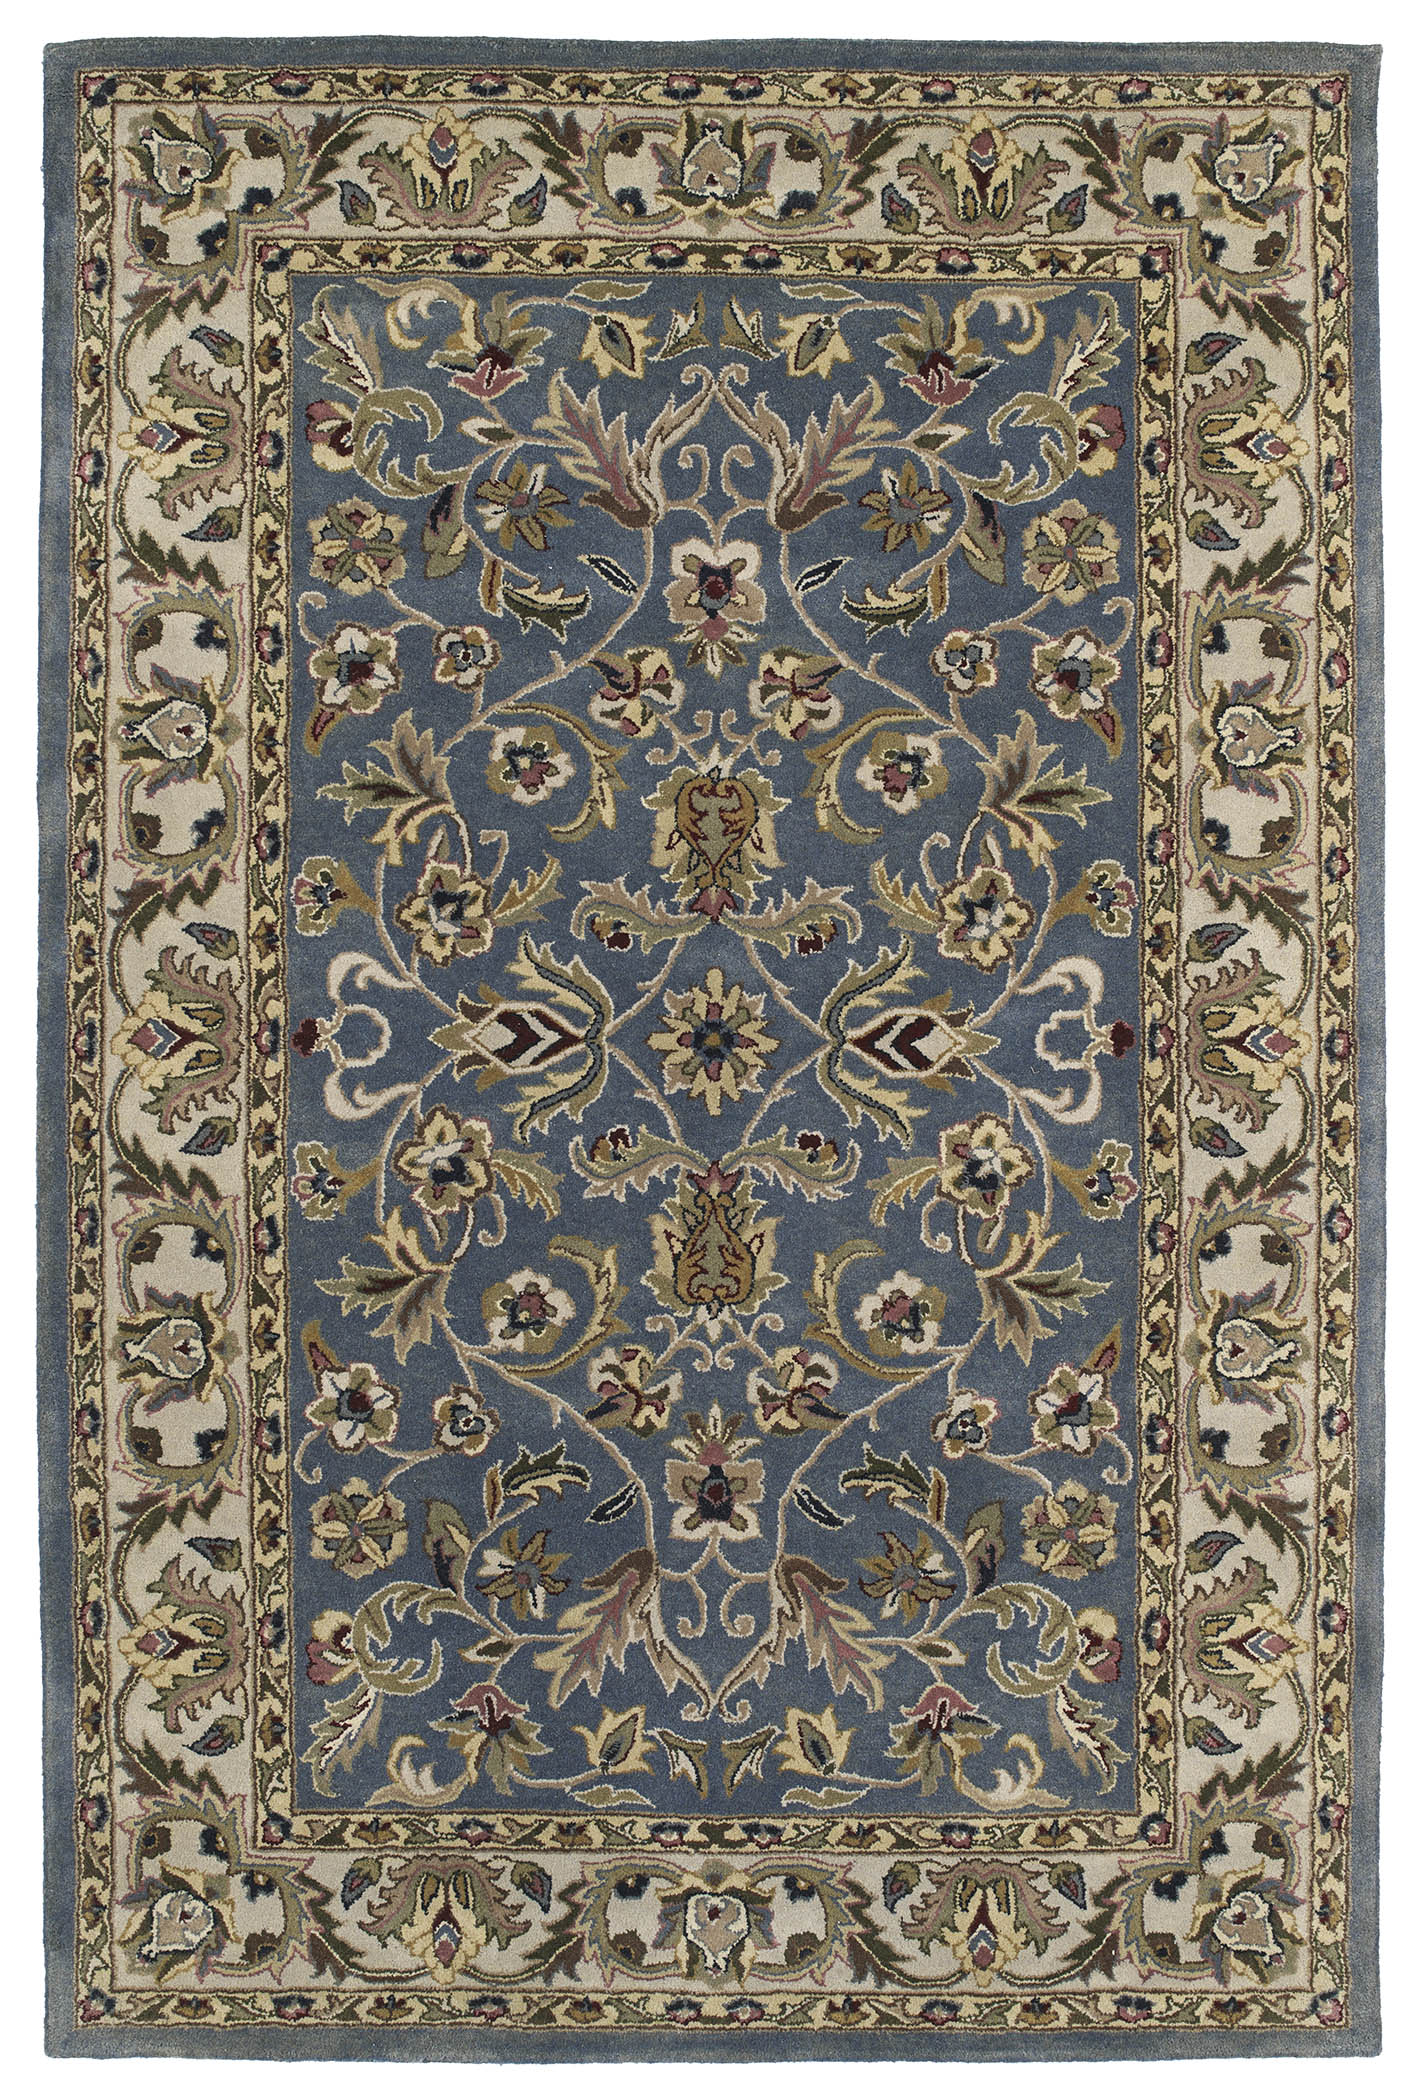 William Blue 6001 17 Mystic Rug By Kaleen